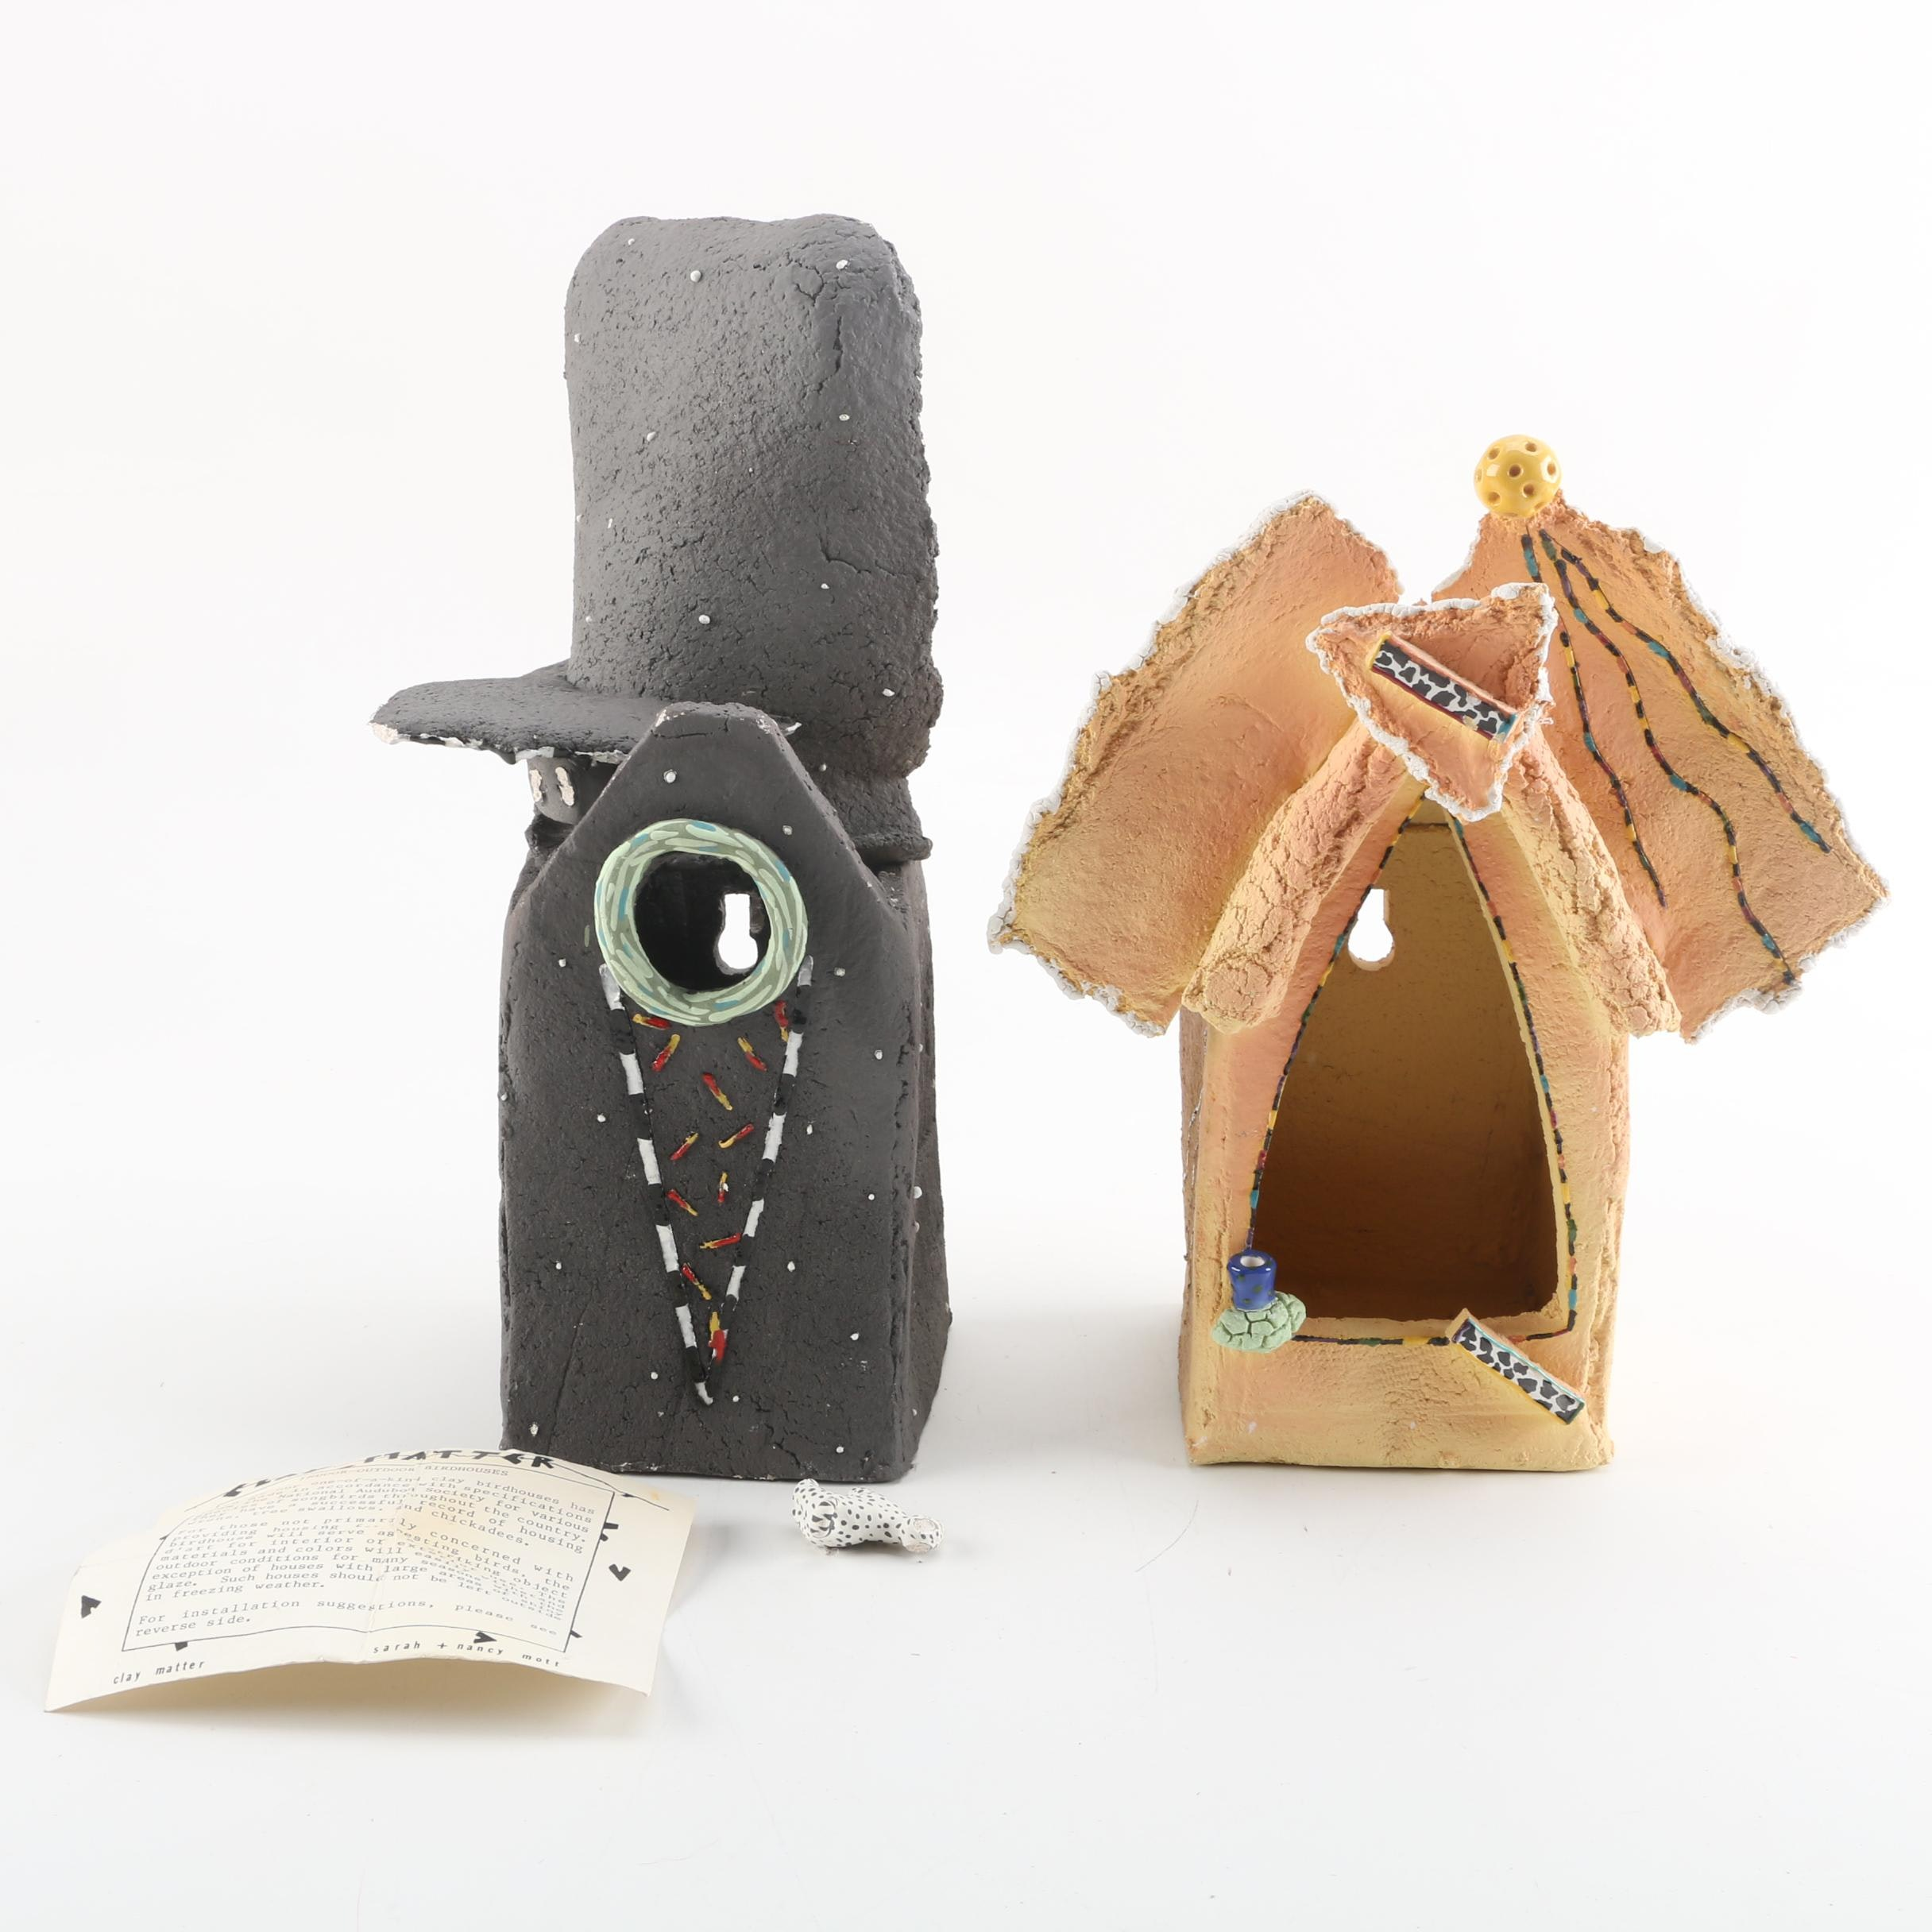 Handmade Clay Birdhouses by Sarah and Nancy Mott